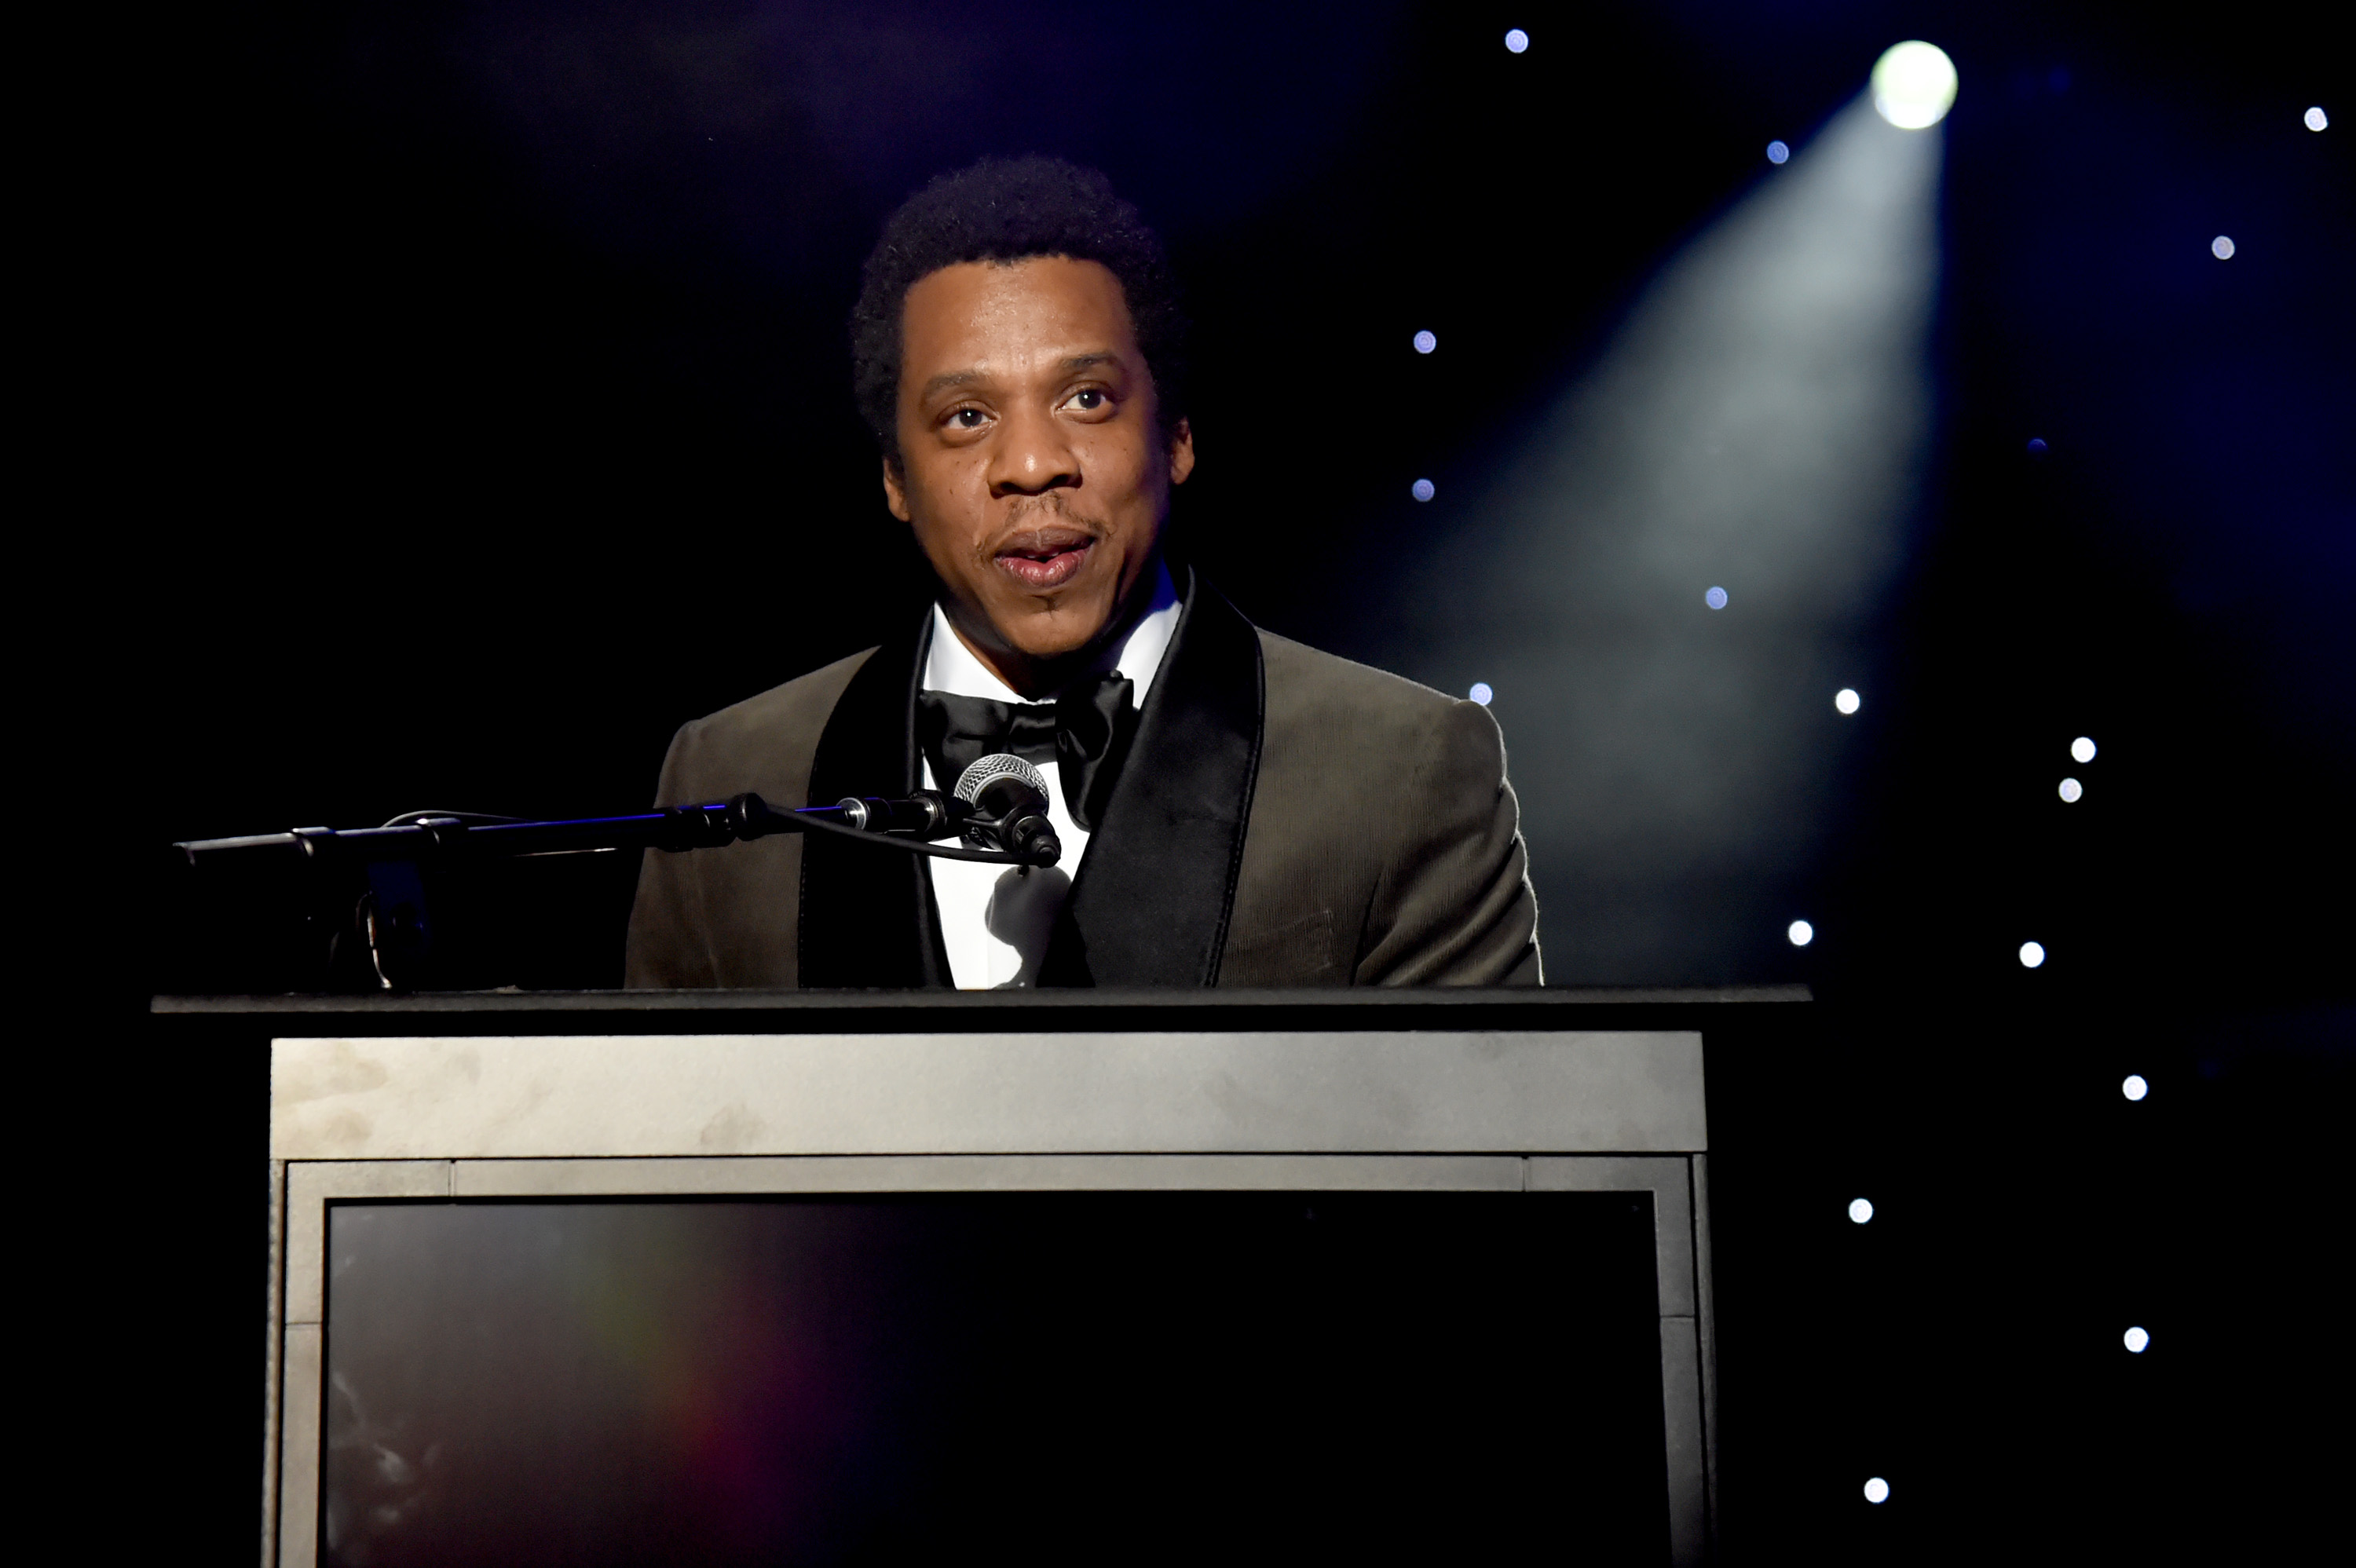 Jay-Z-Opens-Up-About-Why-He-Boycotted-The-Grammys-In-1999